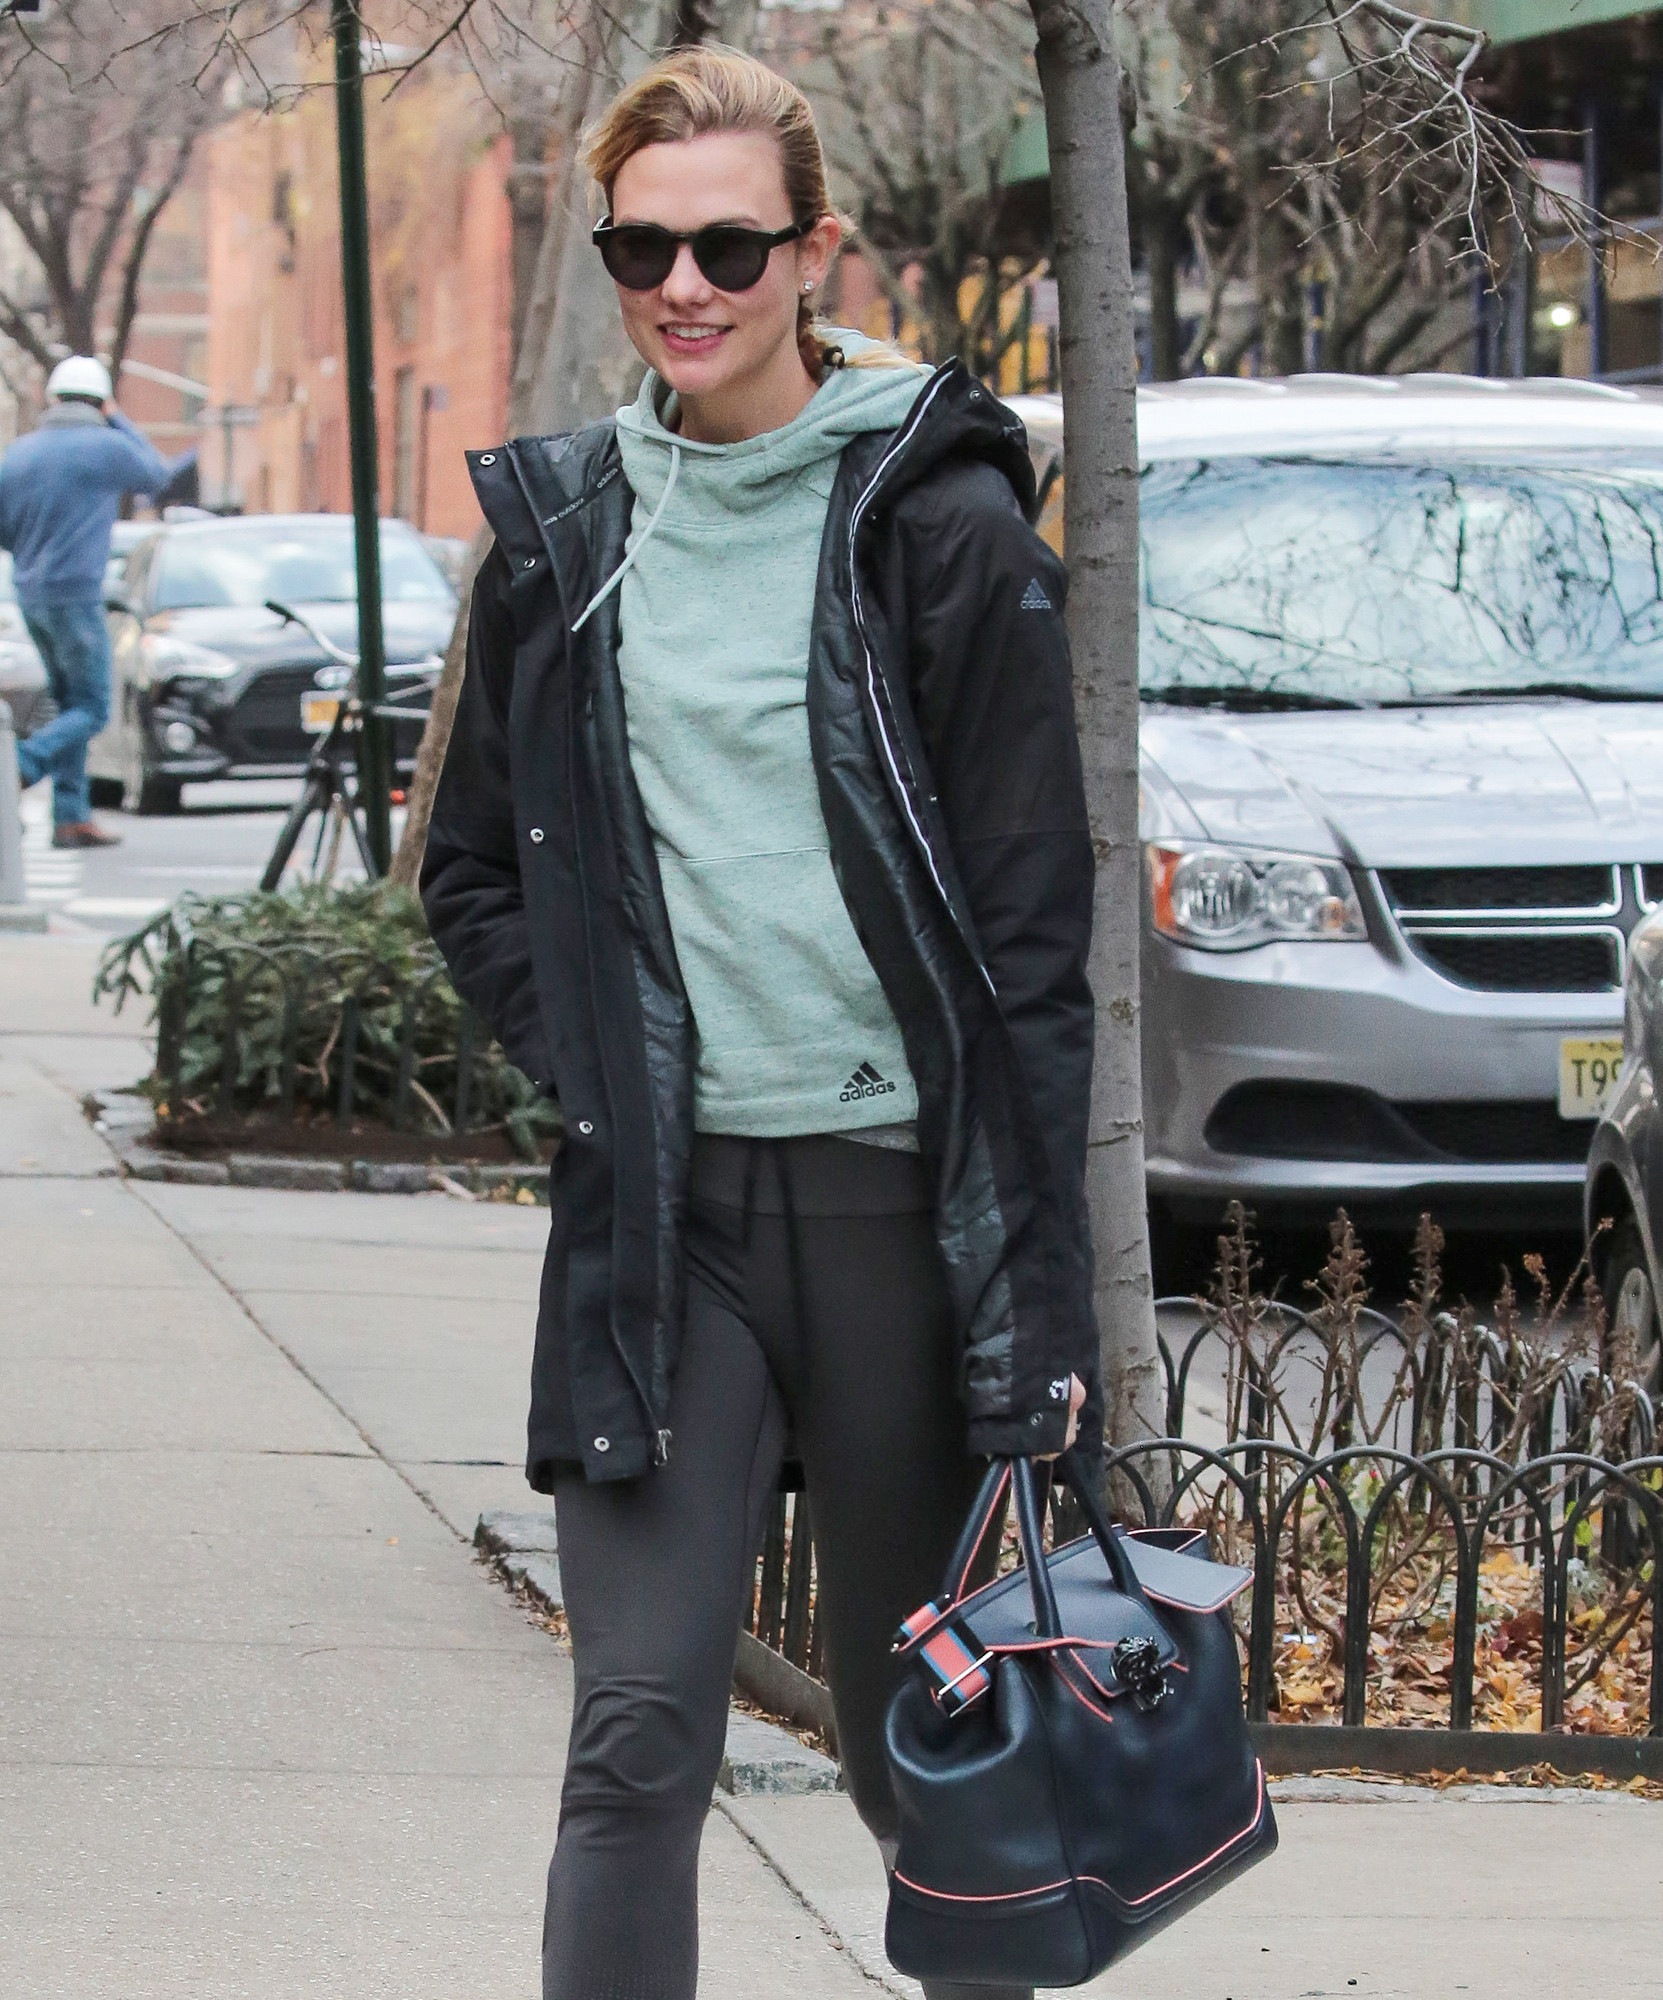 EXCLUSIVE: Karlie Kloss is spotted out and about in New York City